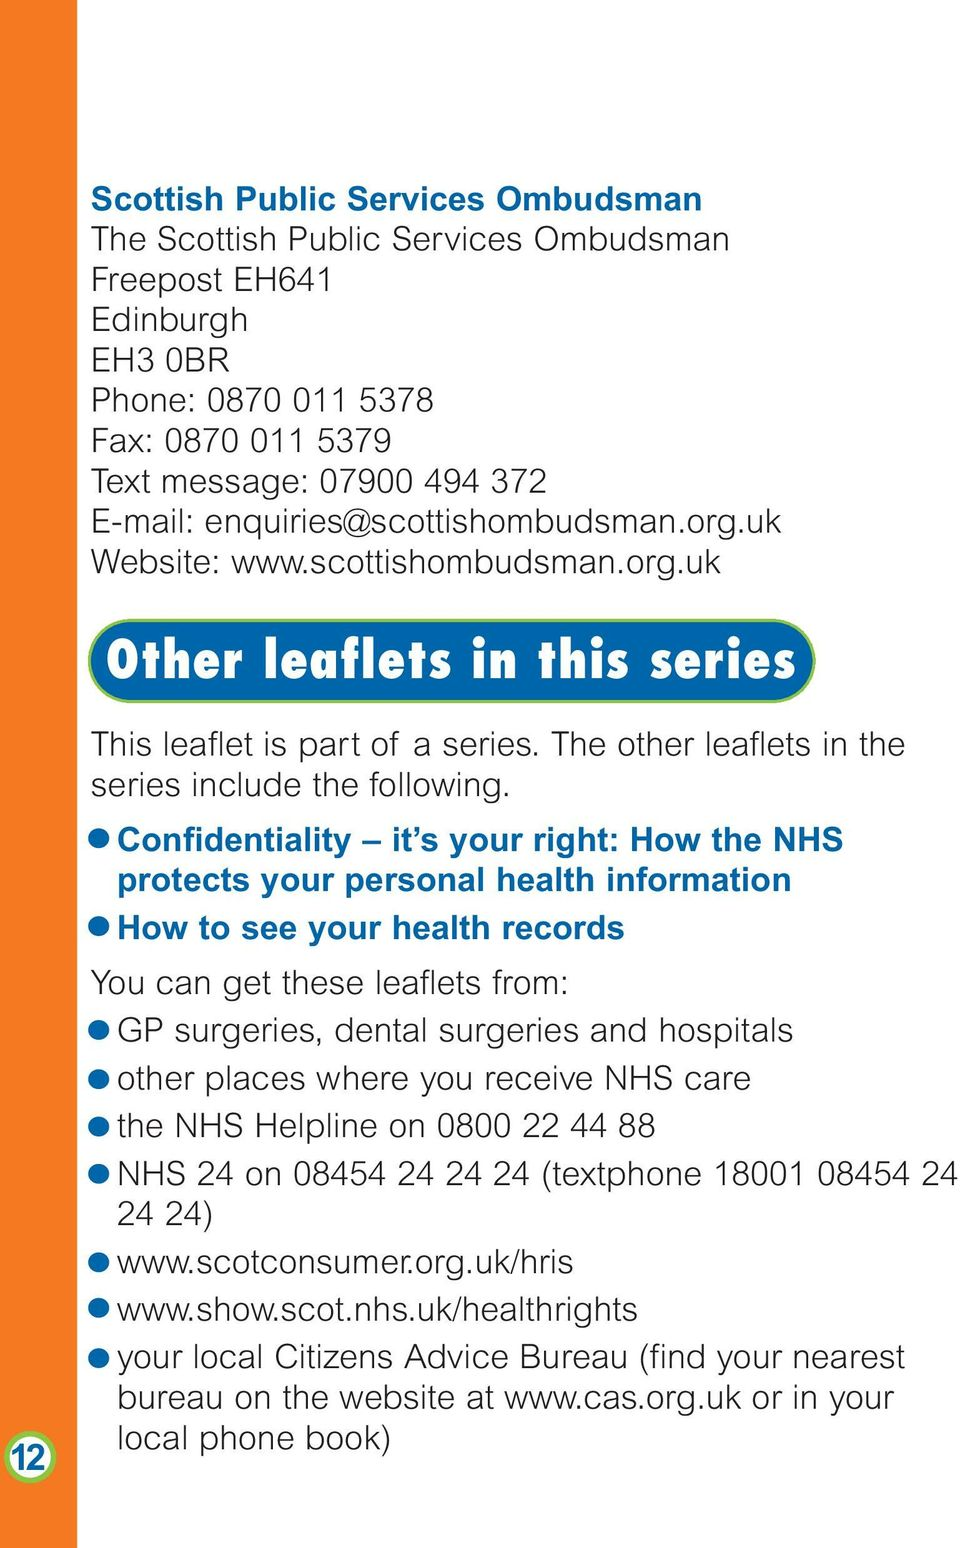 Confidentiality it s your right: How the NHS protects your personal health information How to see your health records You can get these leaflets from: GP surgeries, dental surgeries and hospitals